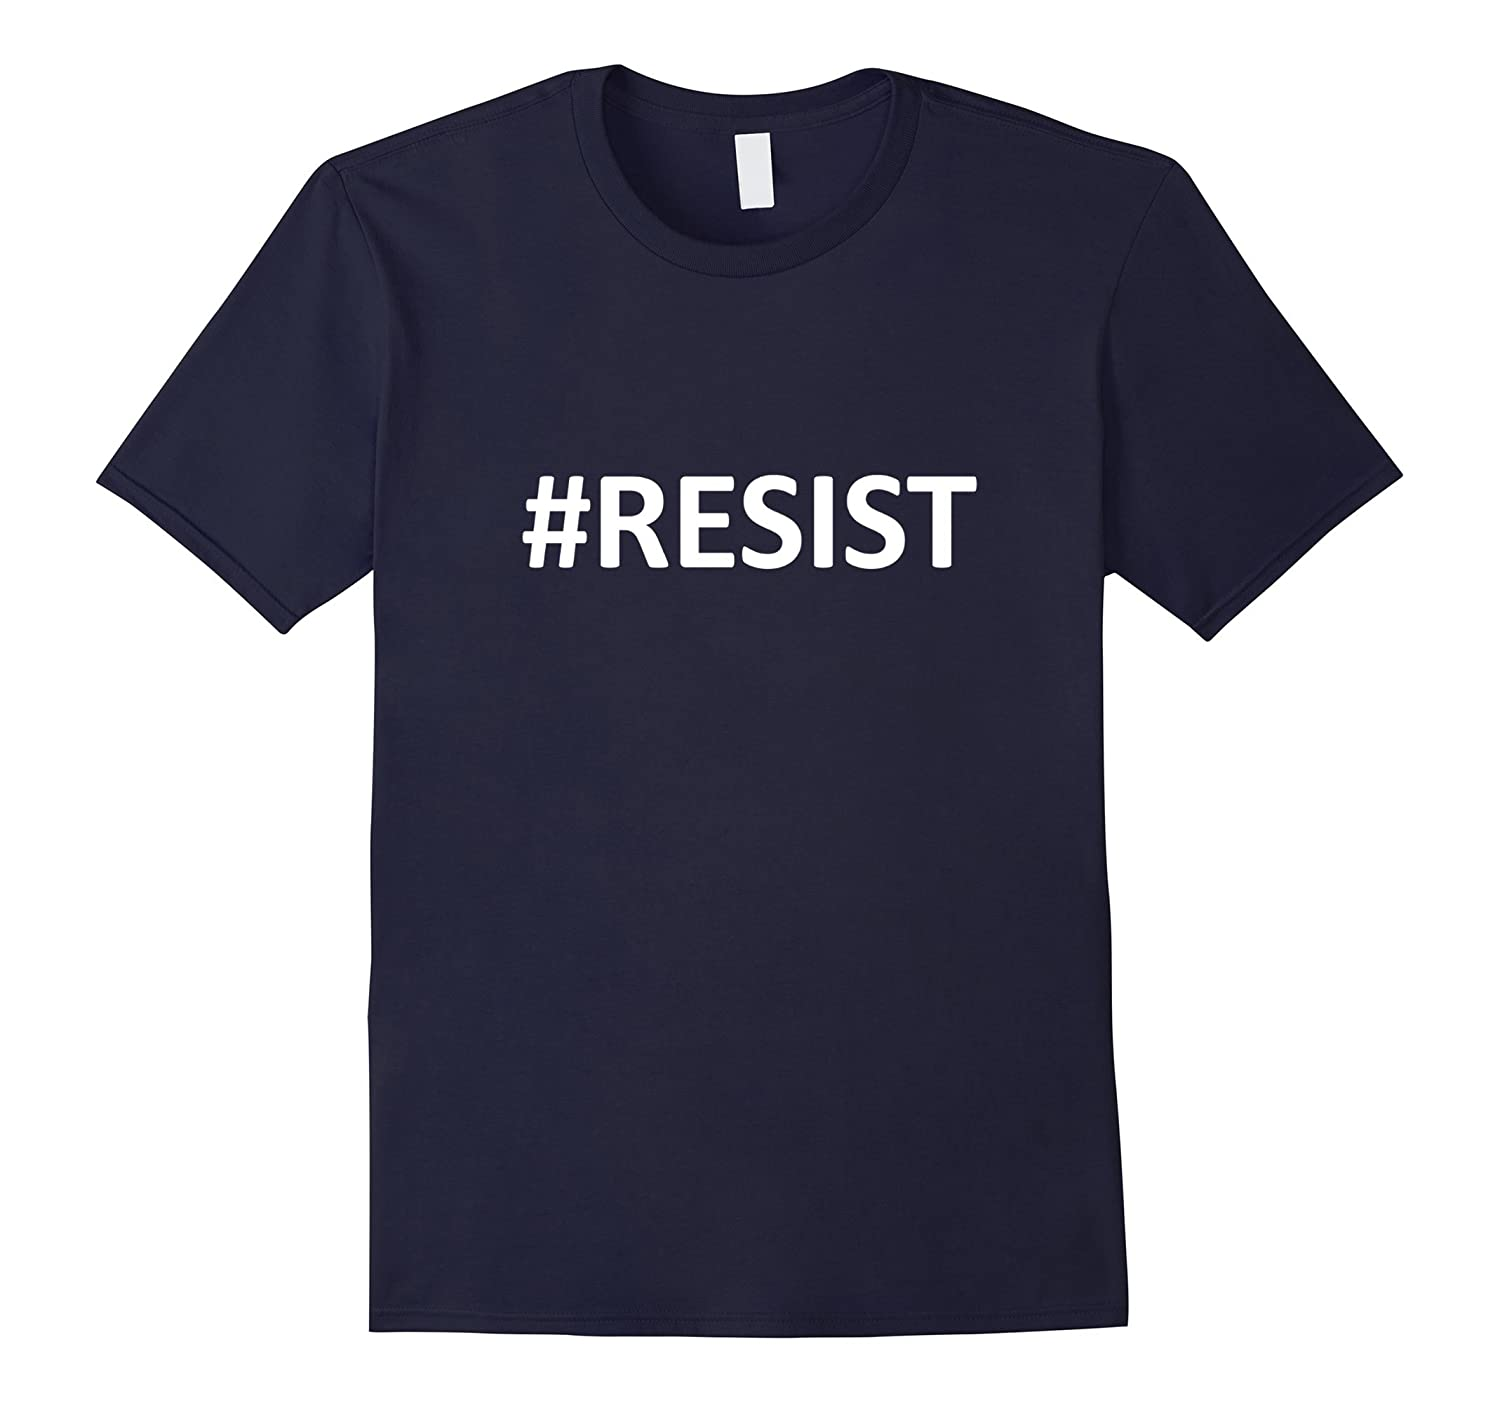 #RESIST Anti-Trump Resist T-Shirt